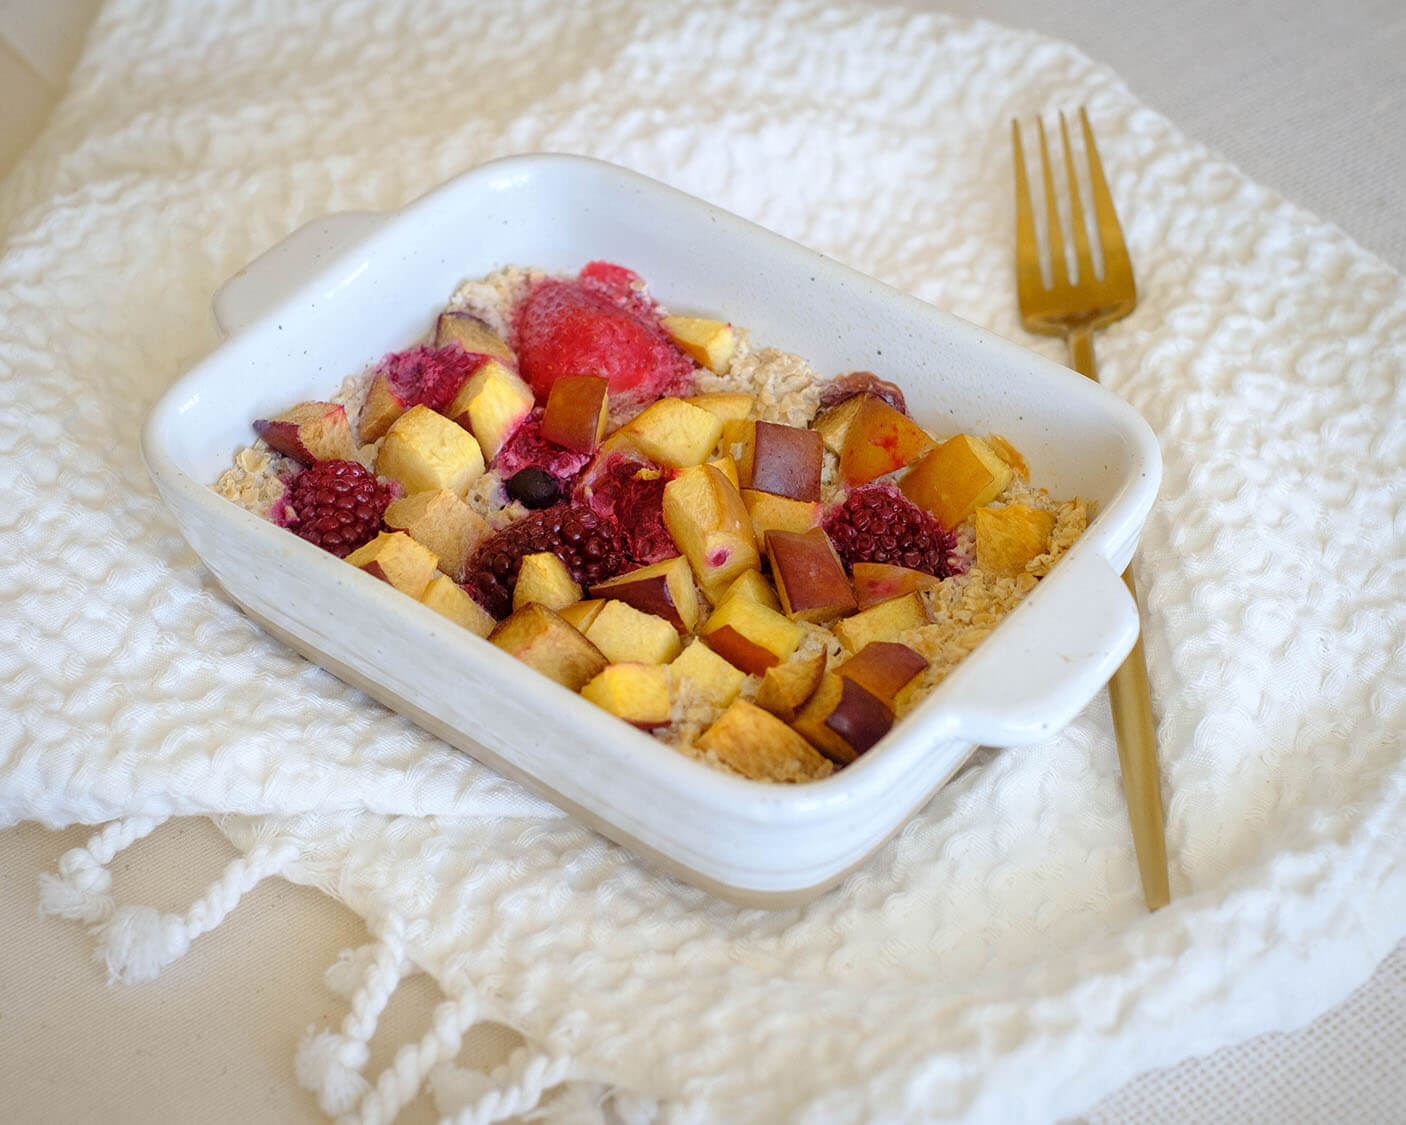 baked oats and fruit